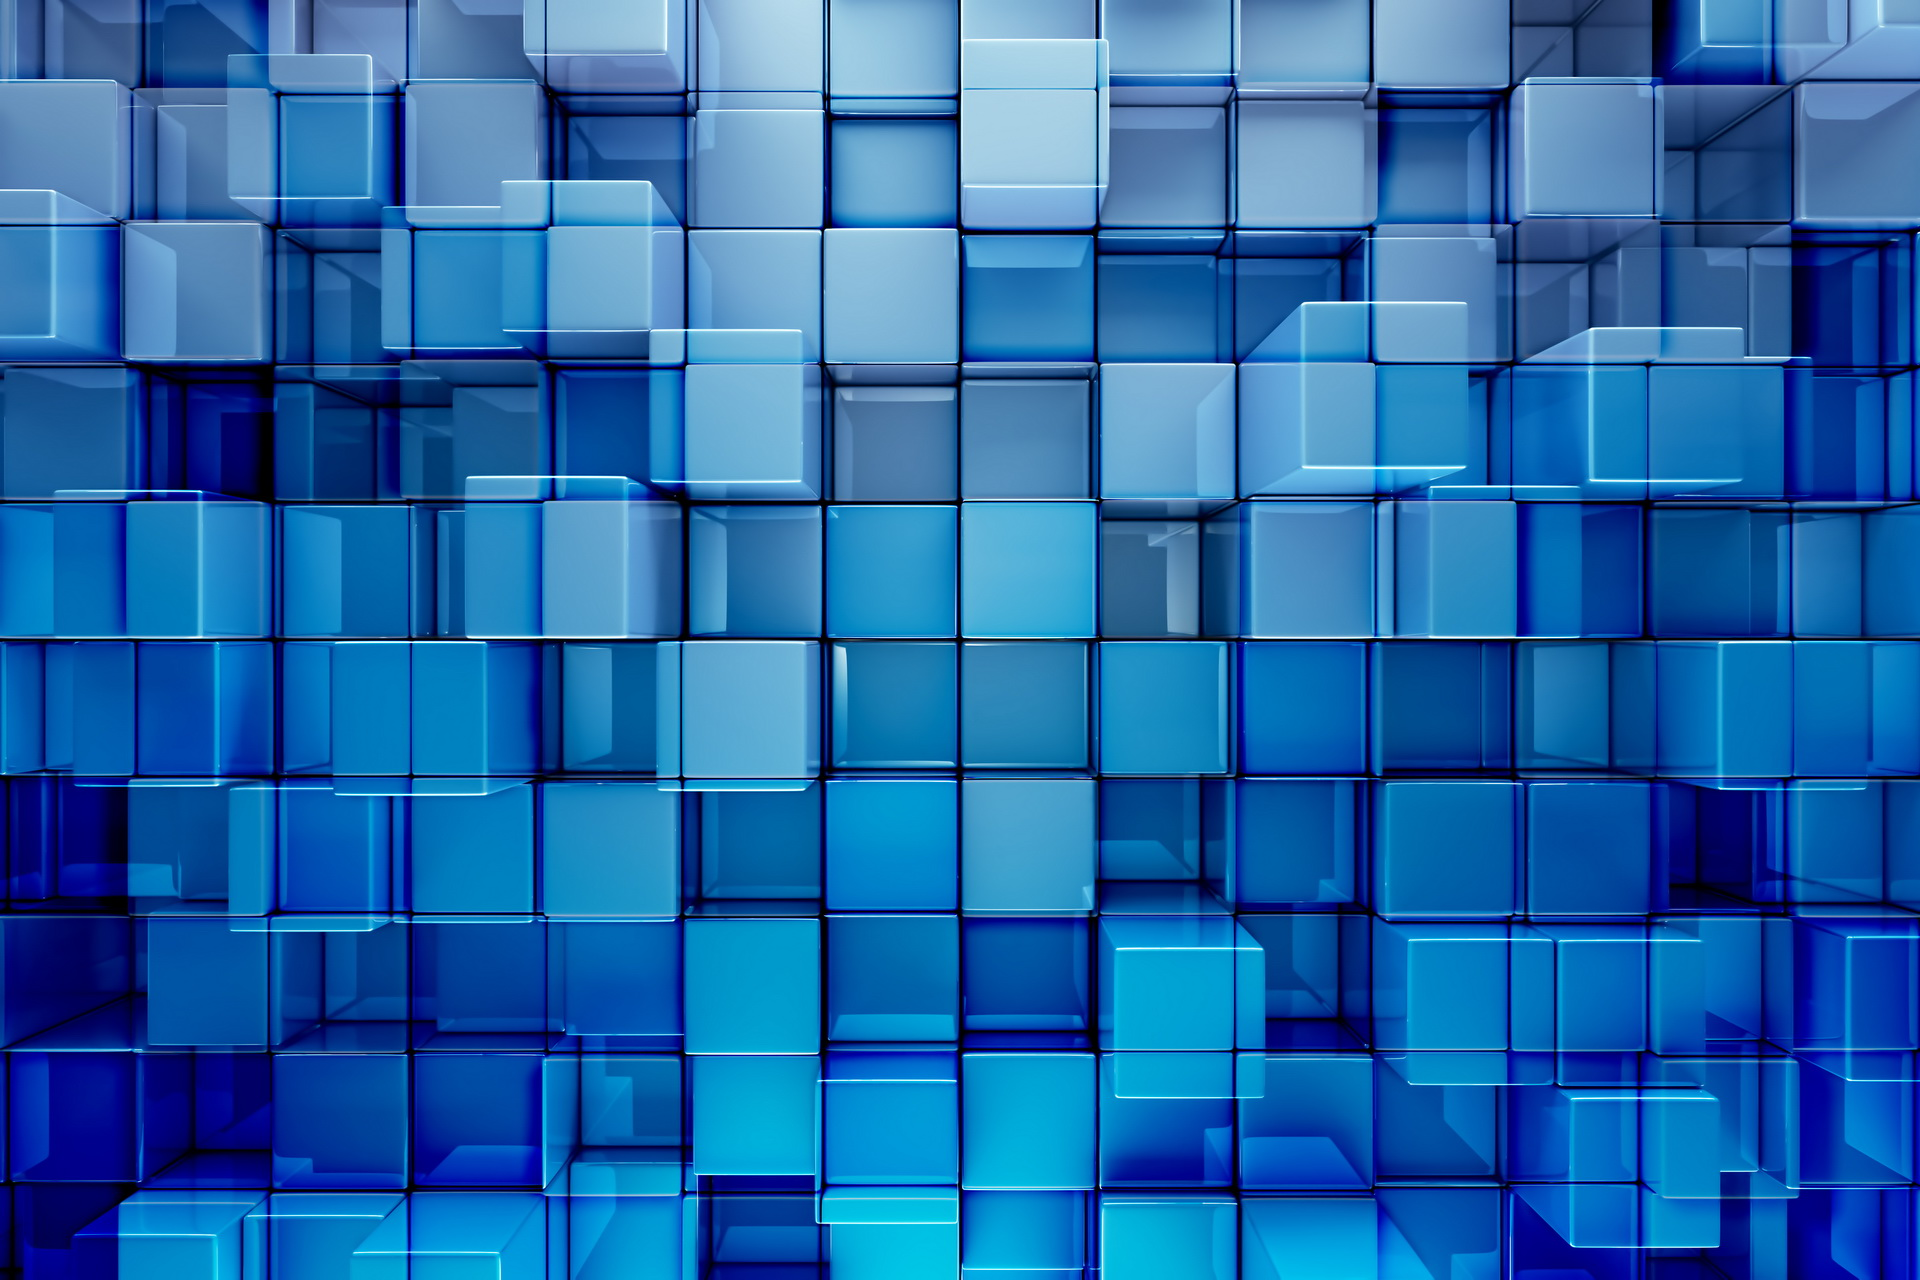 1440x2960 3d cubes abstract samsung galaxy note 9 8 s9 s8 s8 qhd hd 4k wallpapers images - 3d wallpaper for note 8 ...